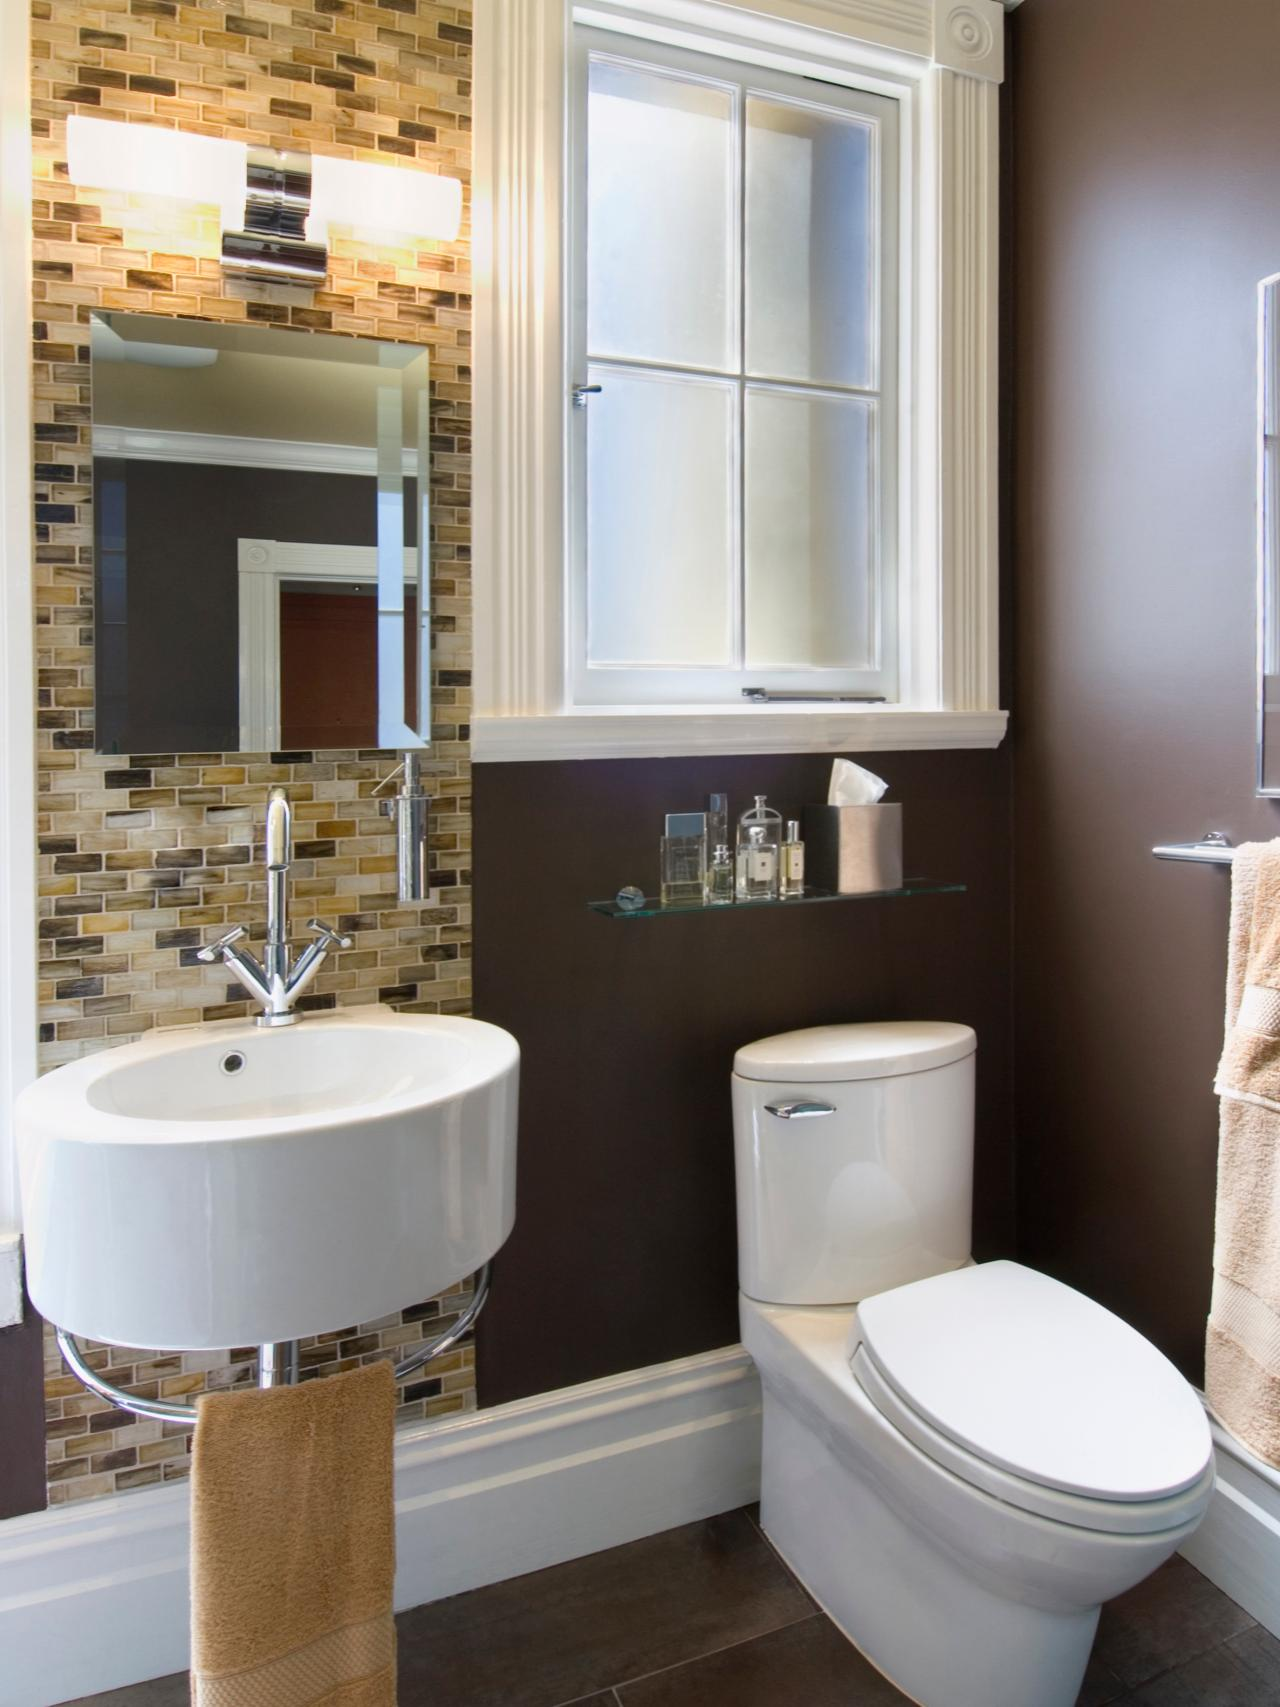 focus on storage - Small Bathroom Remodeling Designs